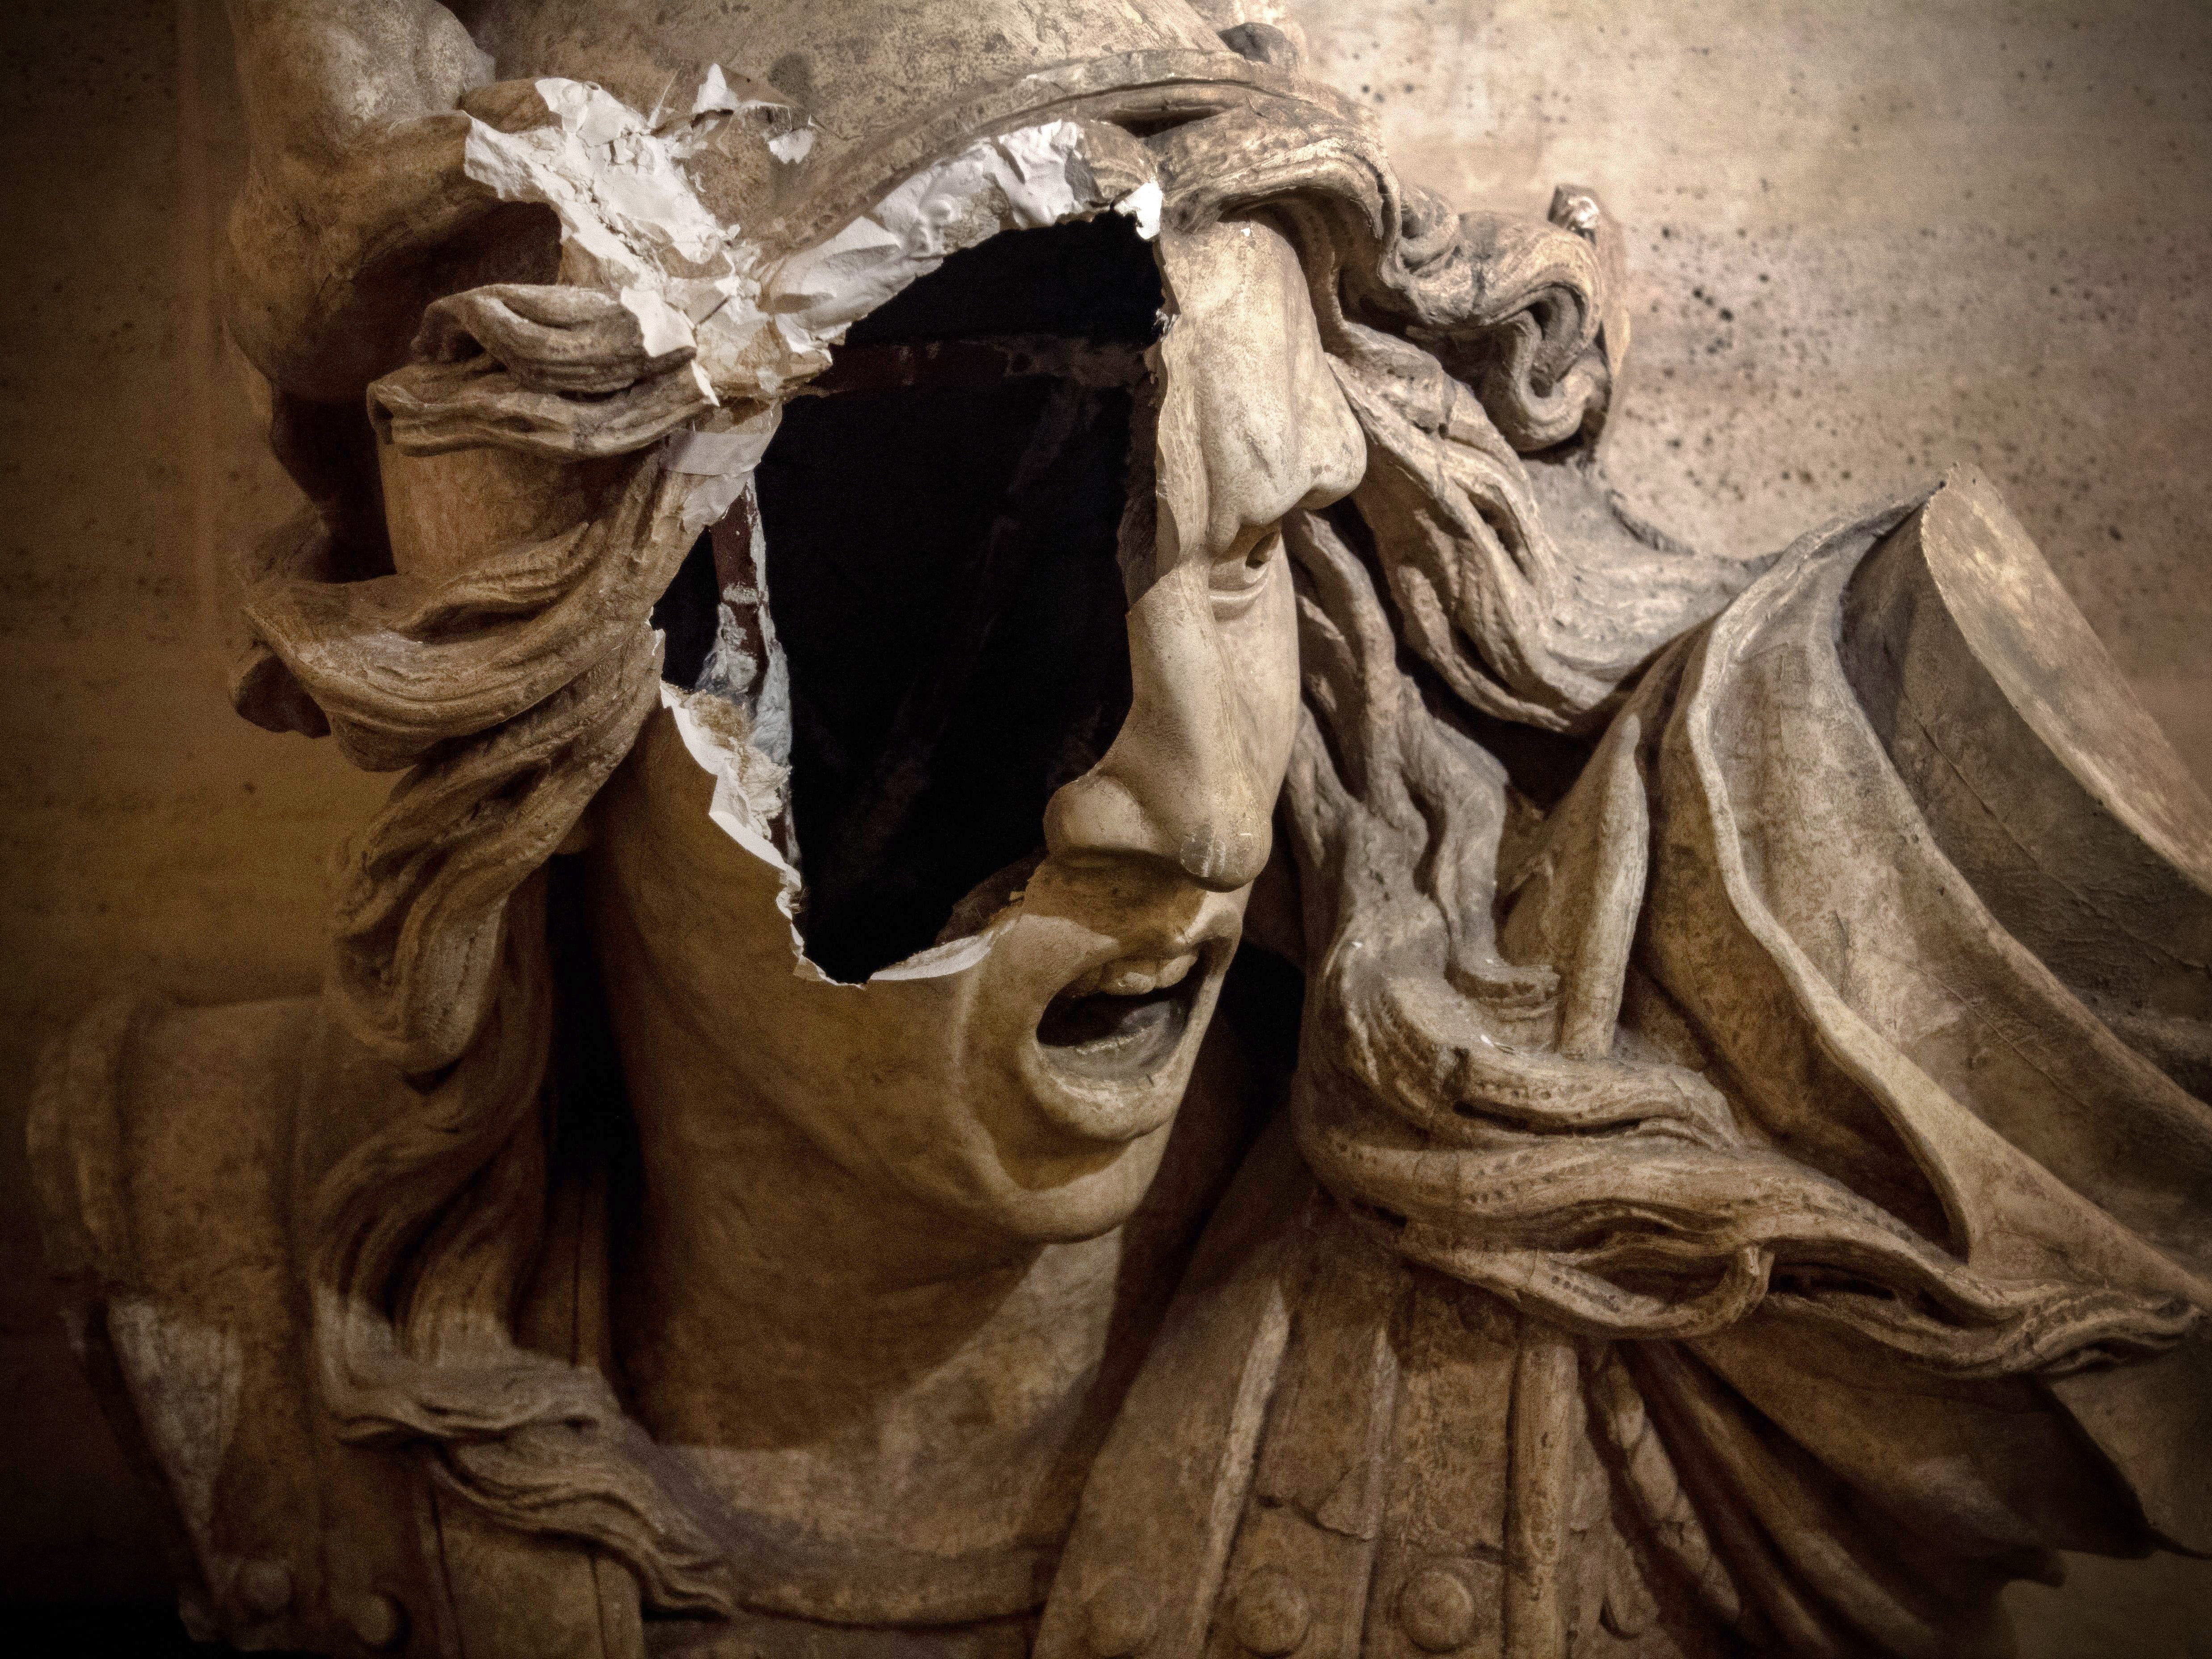 """A statue damaged in the Dec. 1 """"Yellow Vests"""" anti-government protests is seen in a gallery of the Arc de Triomphe on the day of its reopening in Paris, France, on Dec. 12, 2018."""